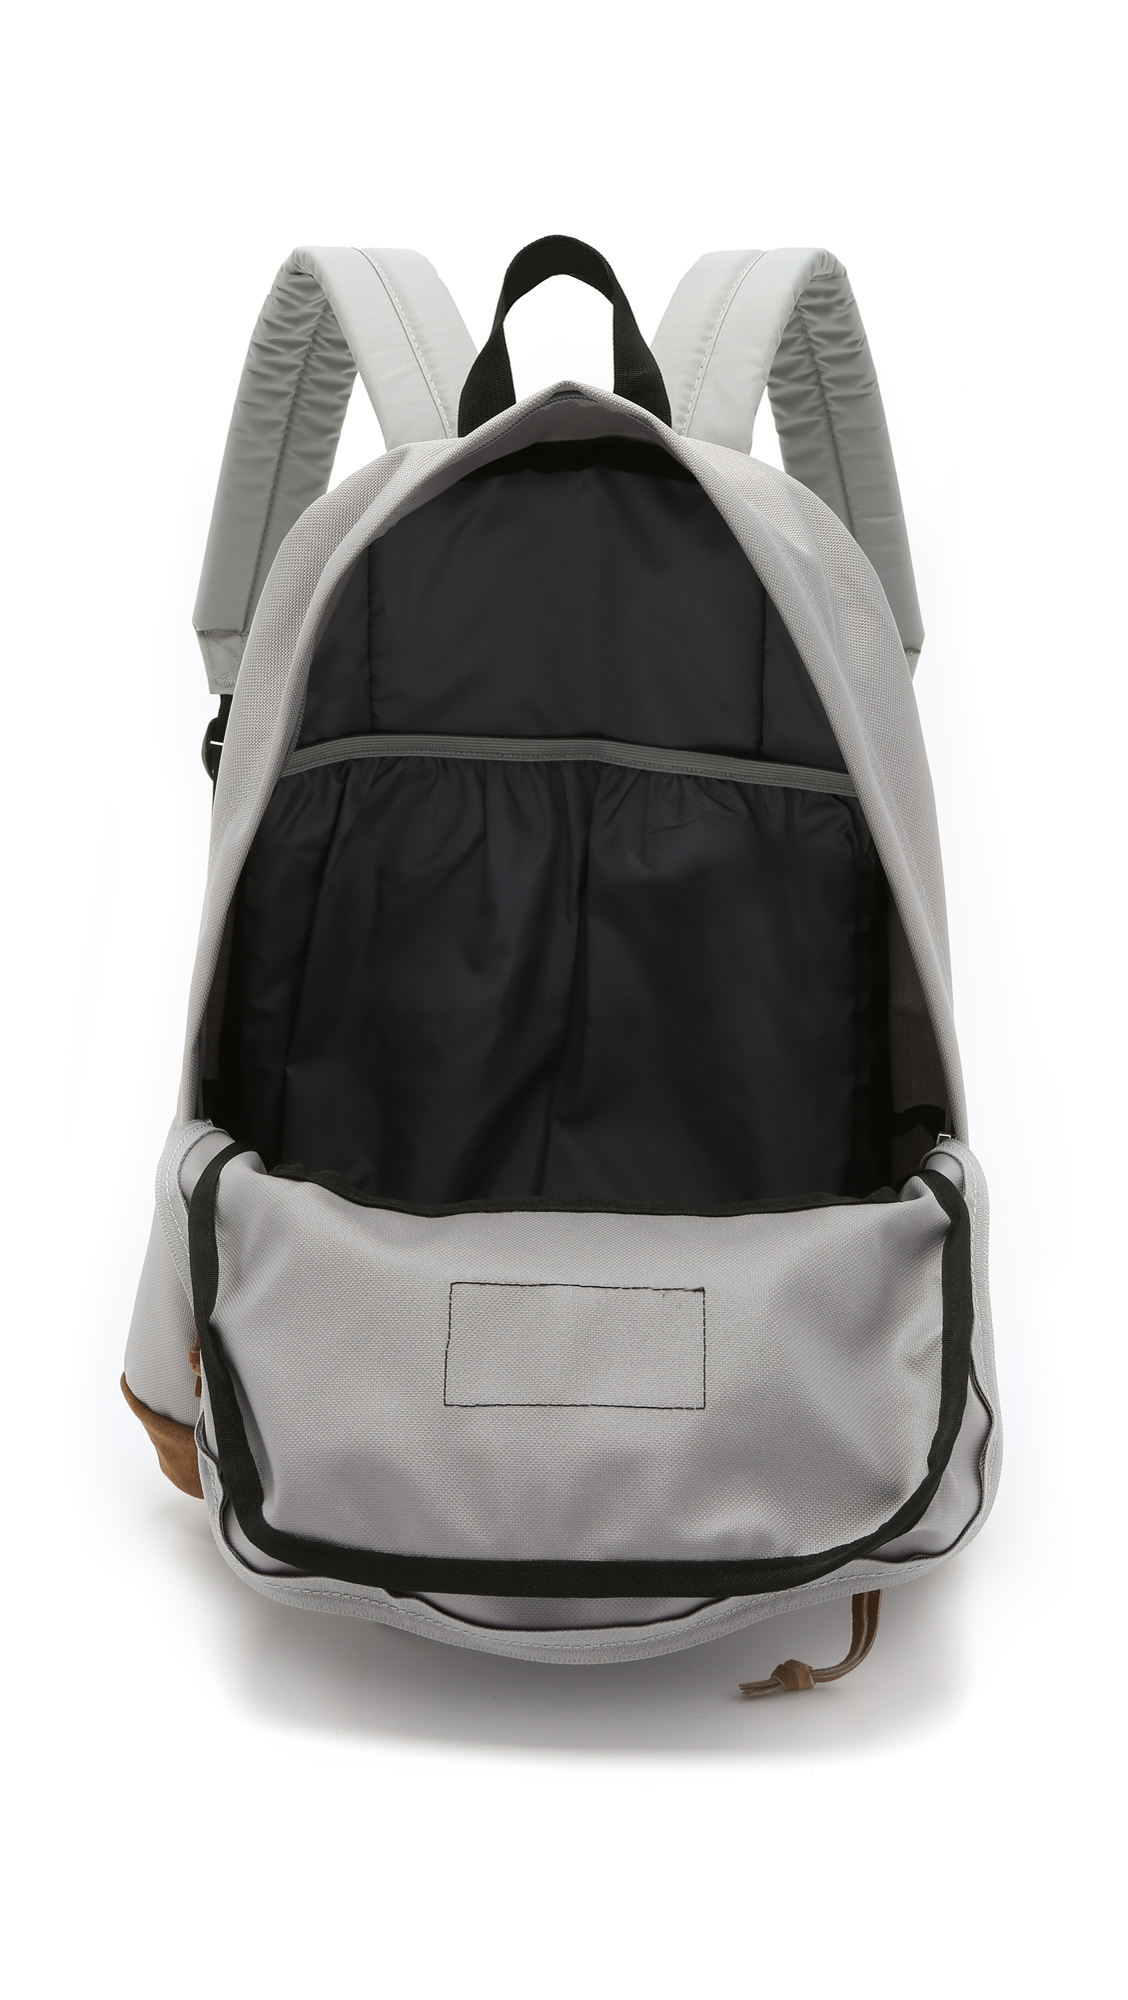 Lyst - Jansport Right Pack Backpack - Grey Rabbit in Gray